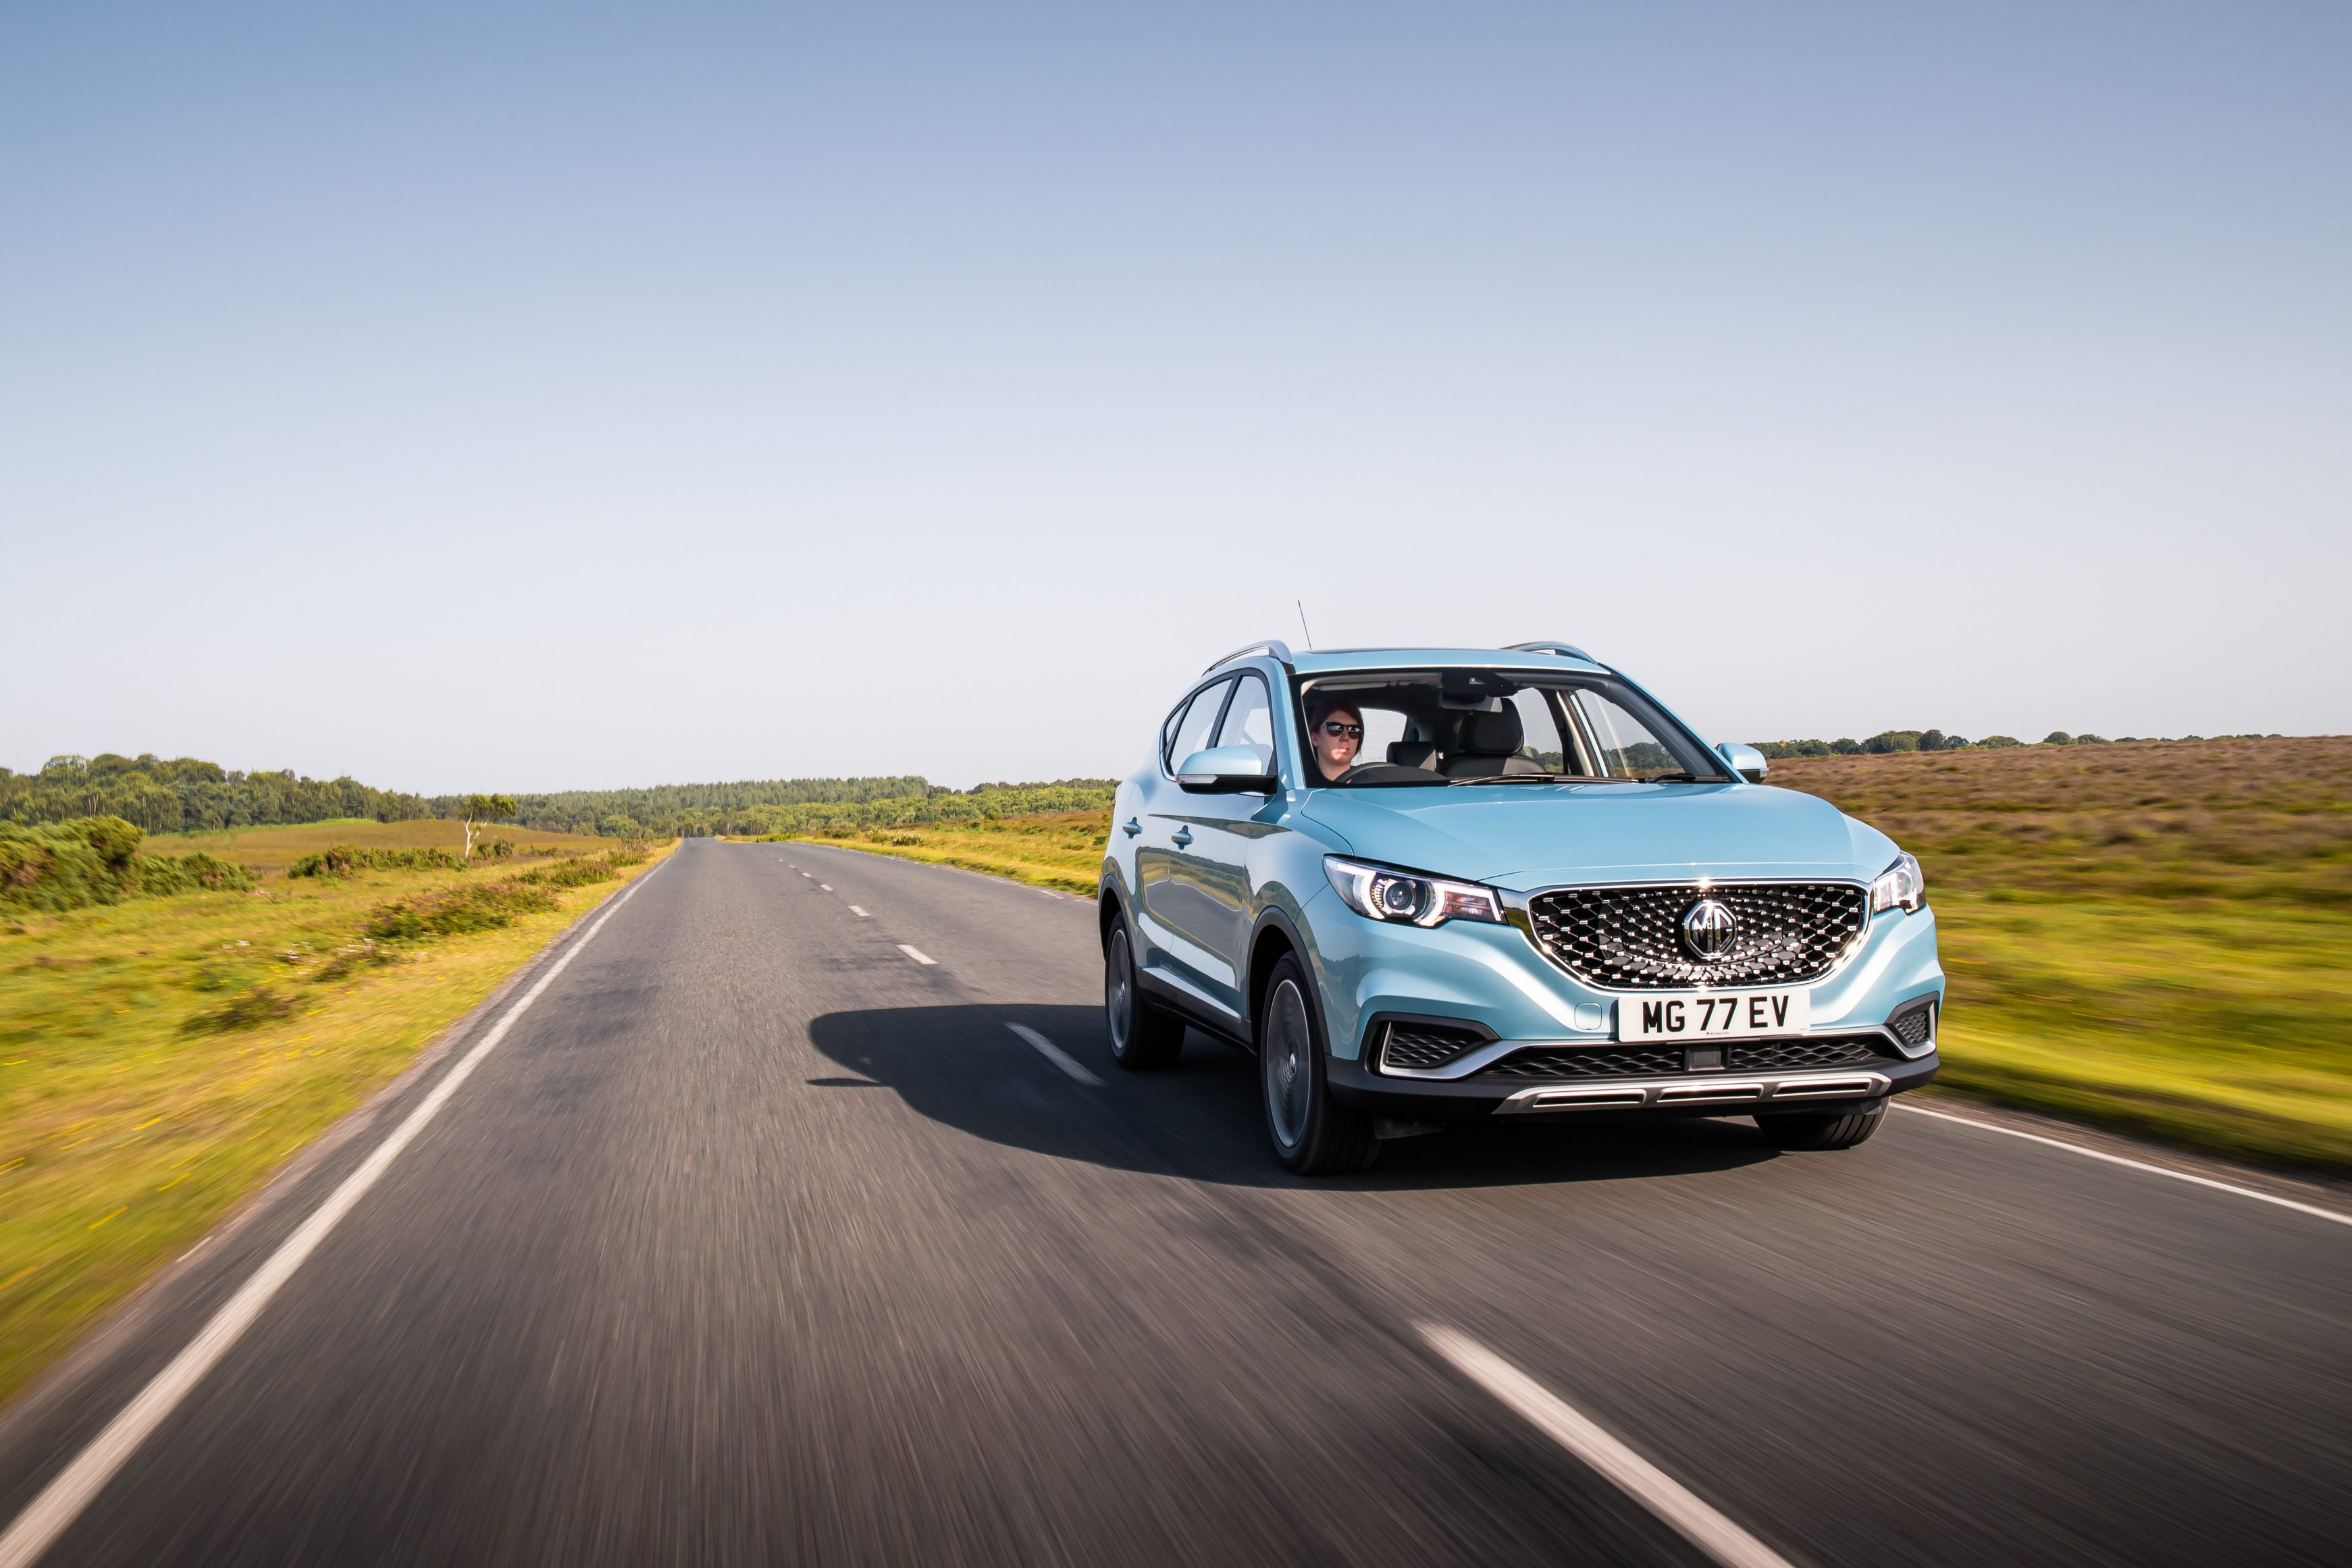 Cheap electric cars - MG ZS EV 1